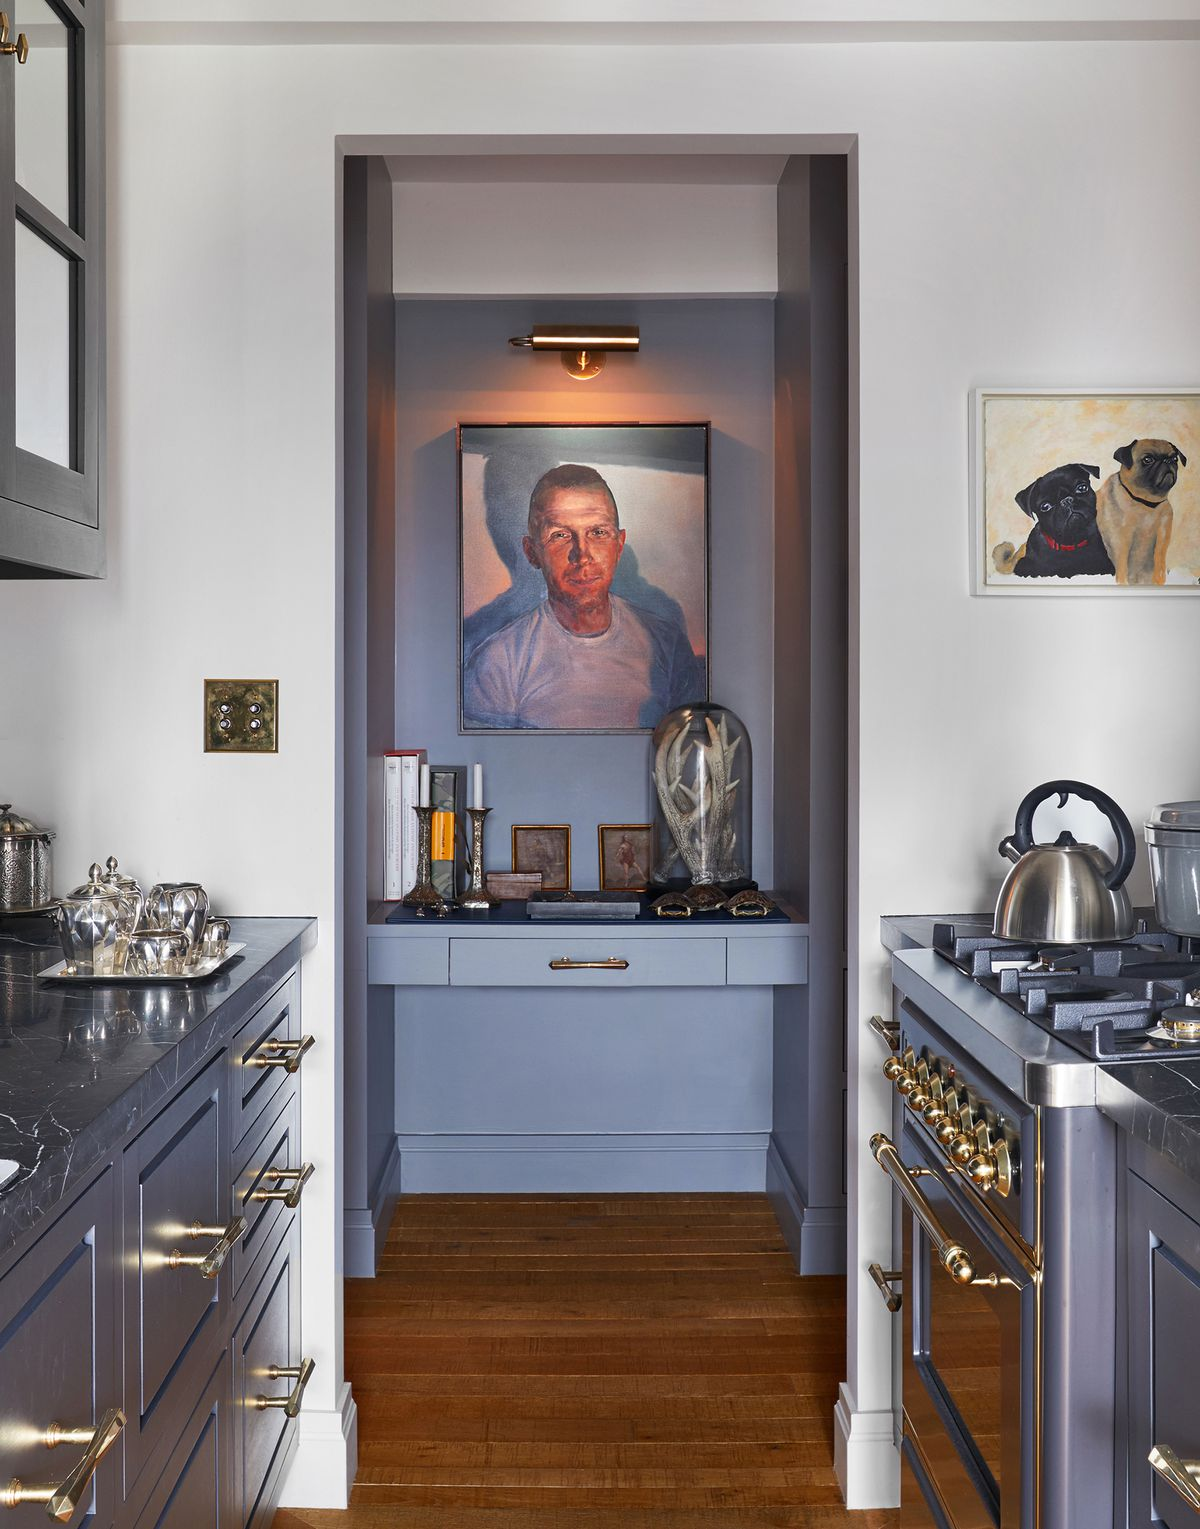 The narrow galley kitchen has gray cabinets and a gray range. Through it, you can see a portrait of Campbell painted by his friend.